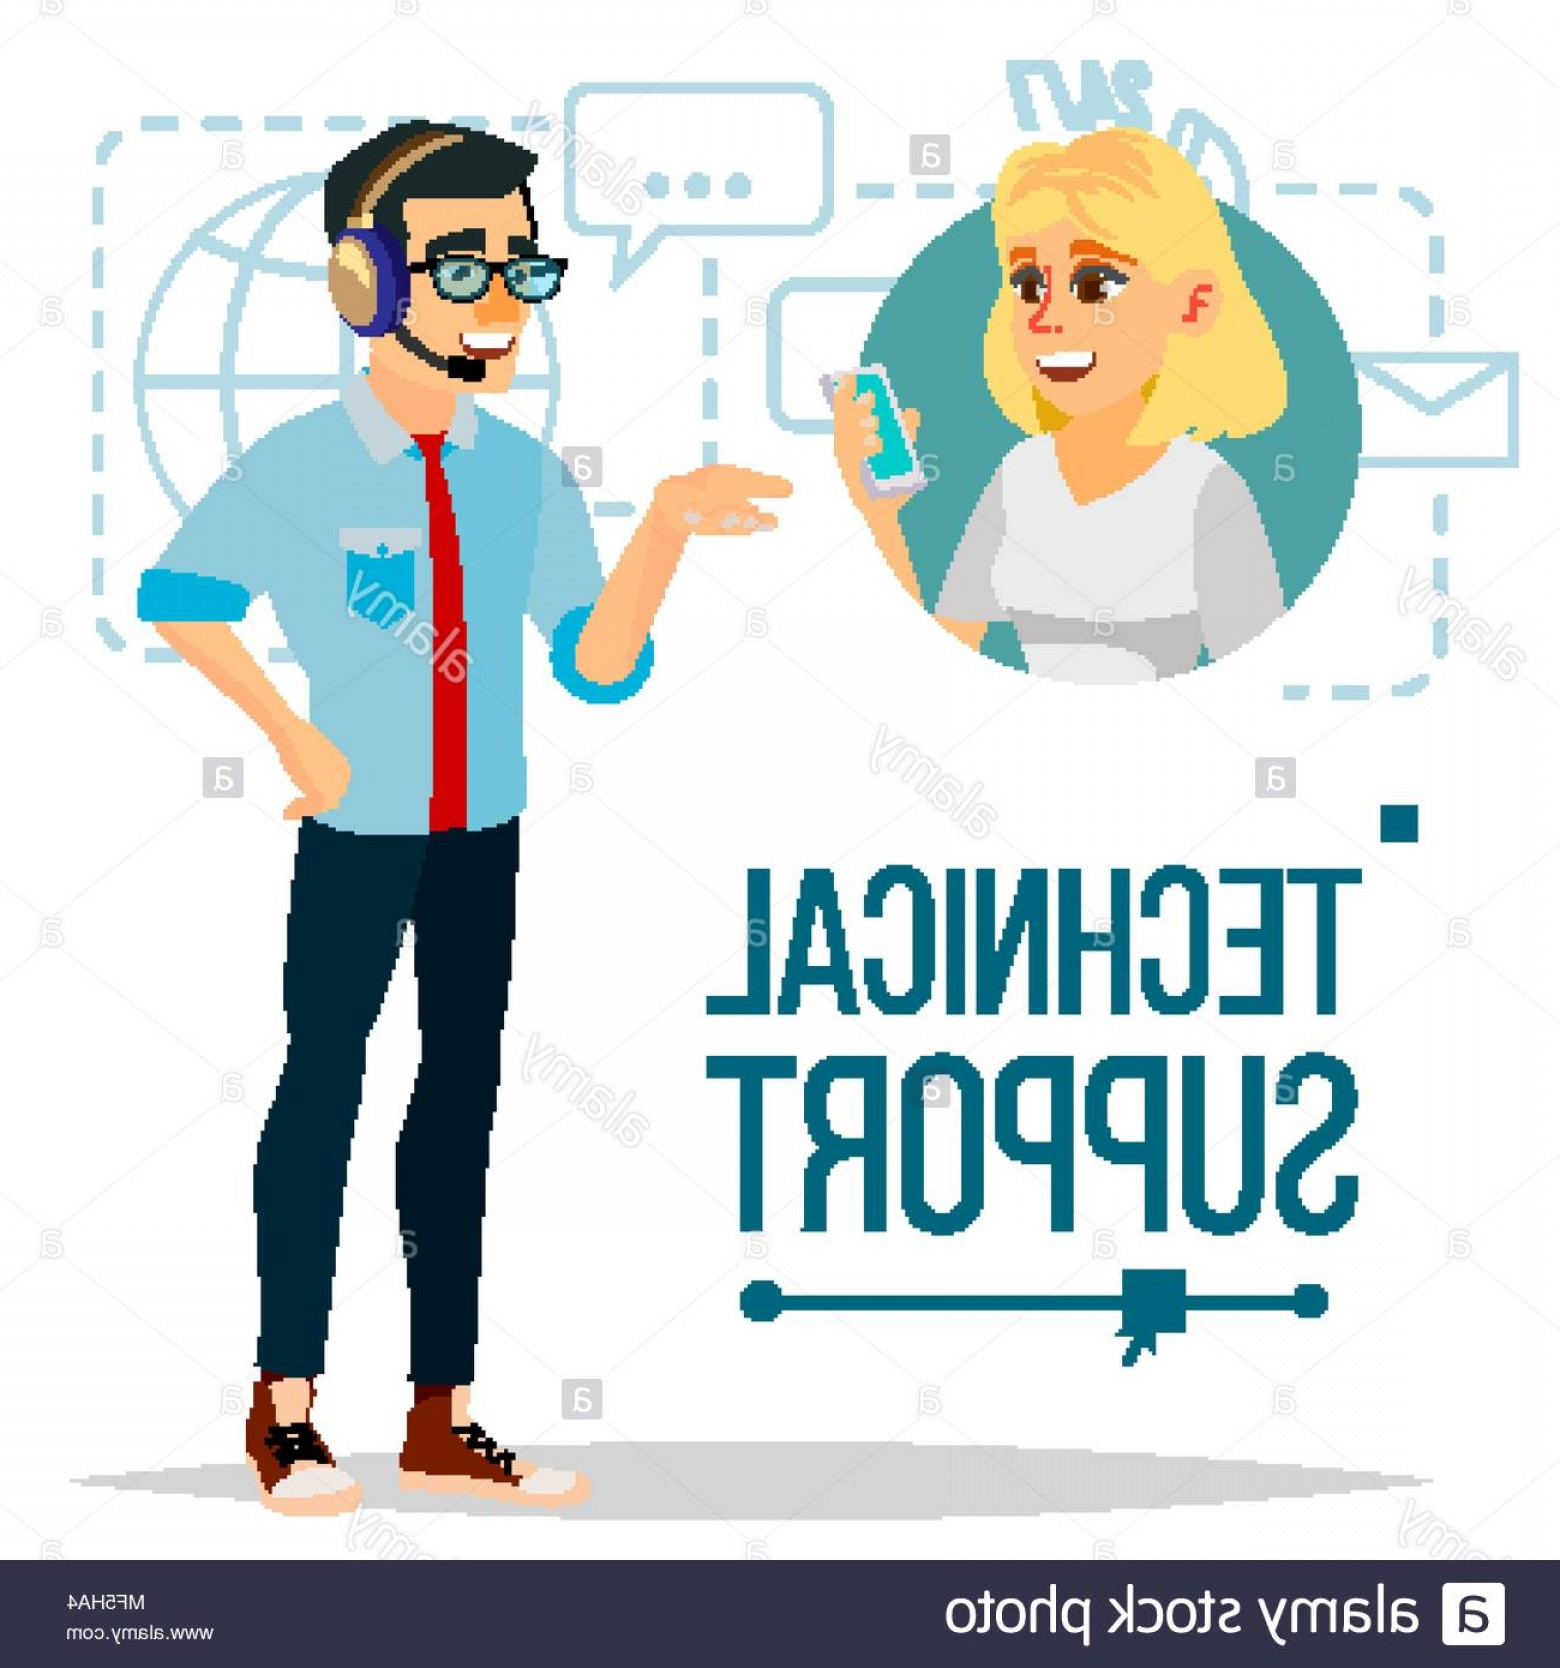 Support Vector Graphics: Technical Support Vector Support Working Online Tech Support Flat Isolated Illustration Image